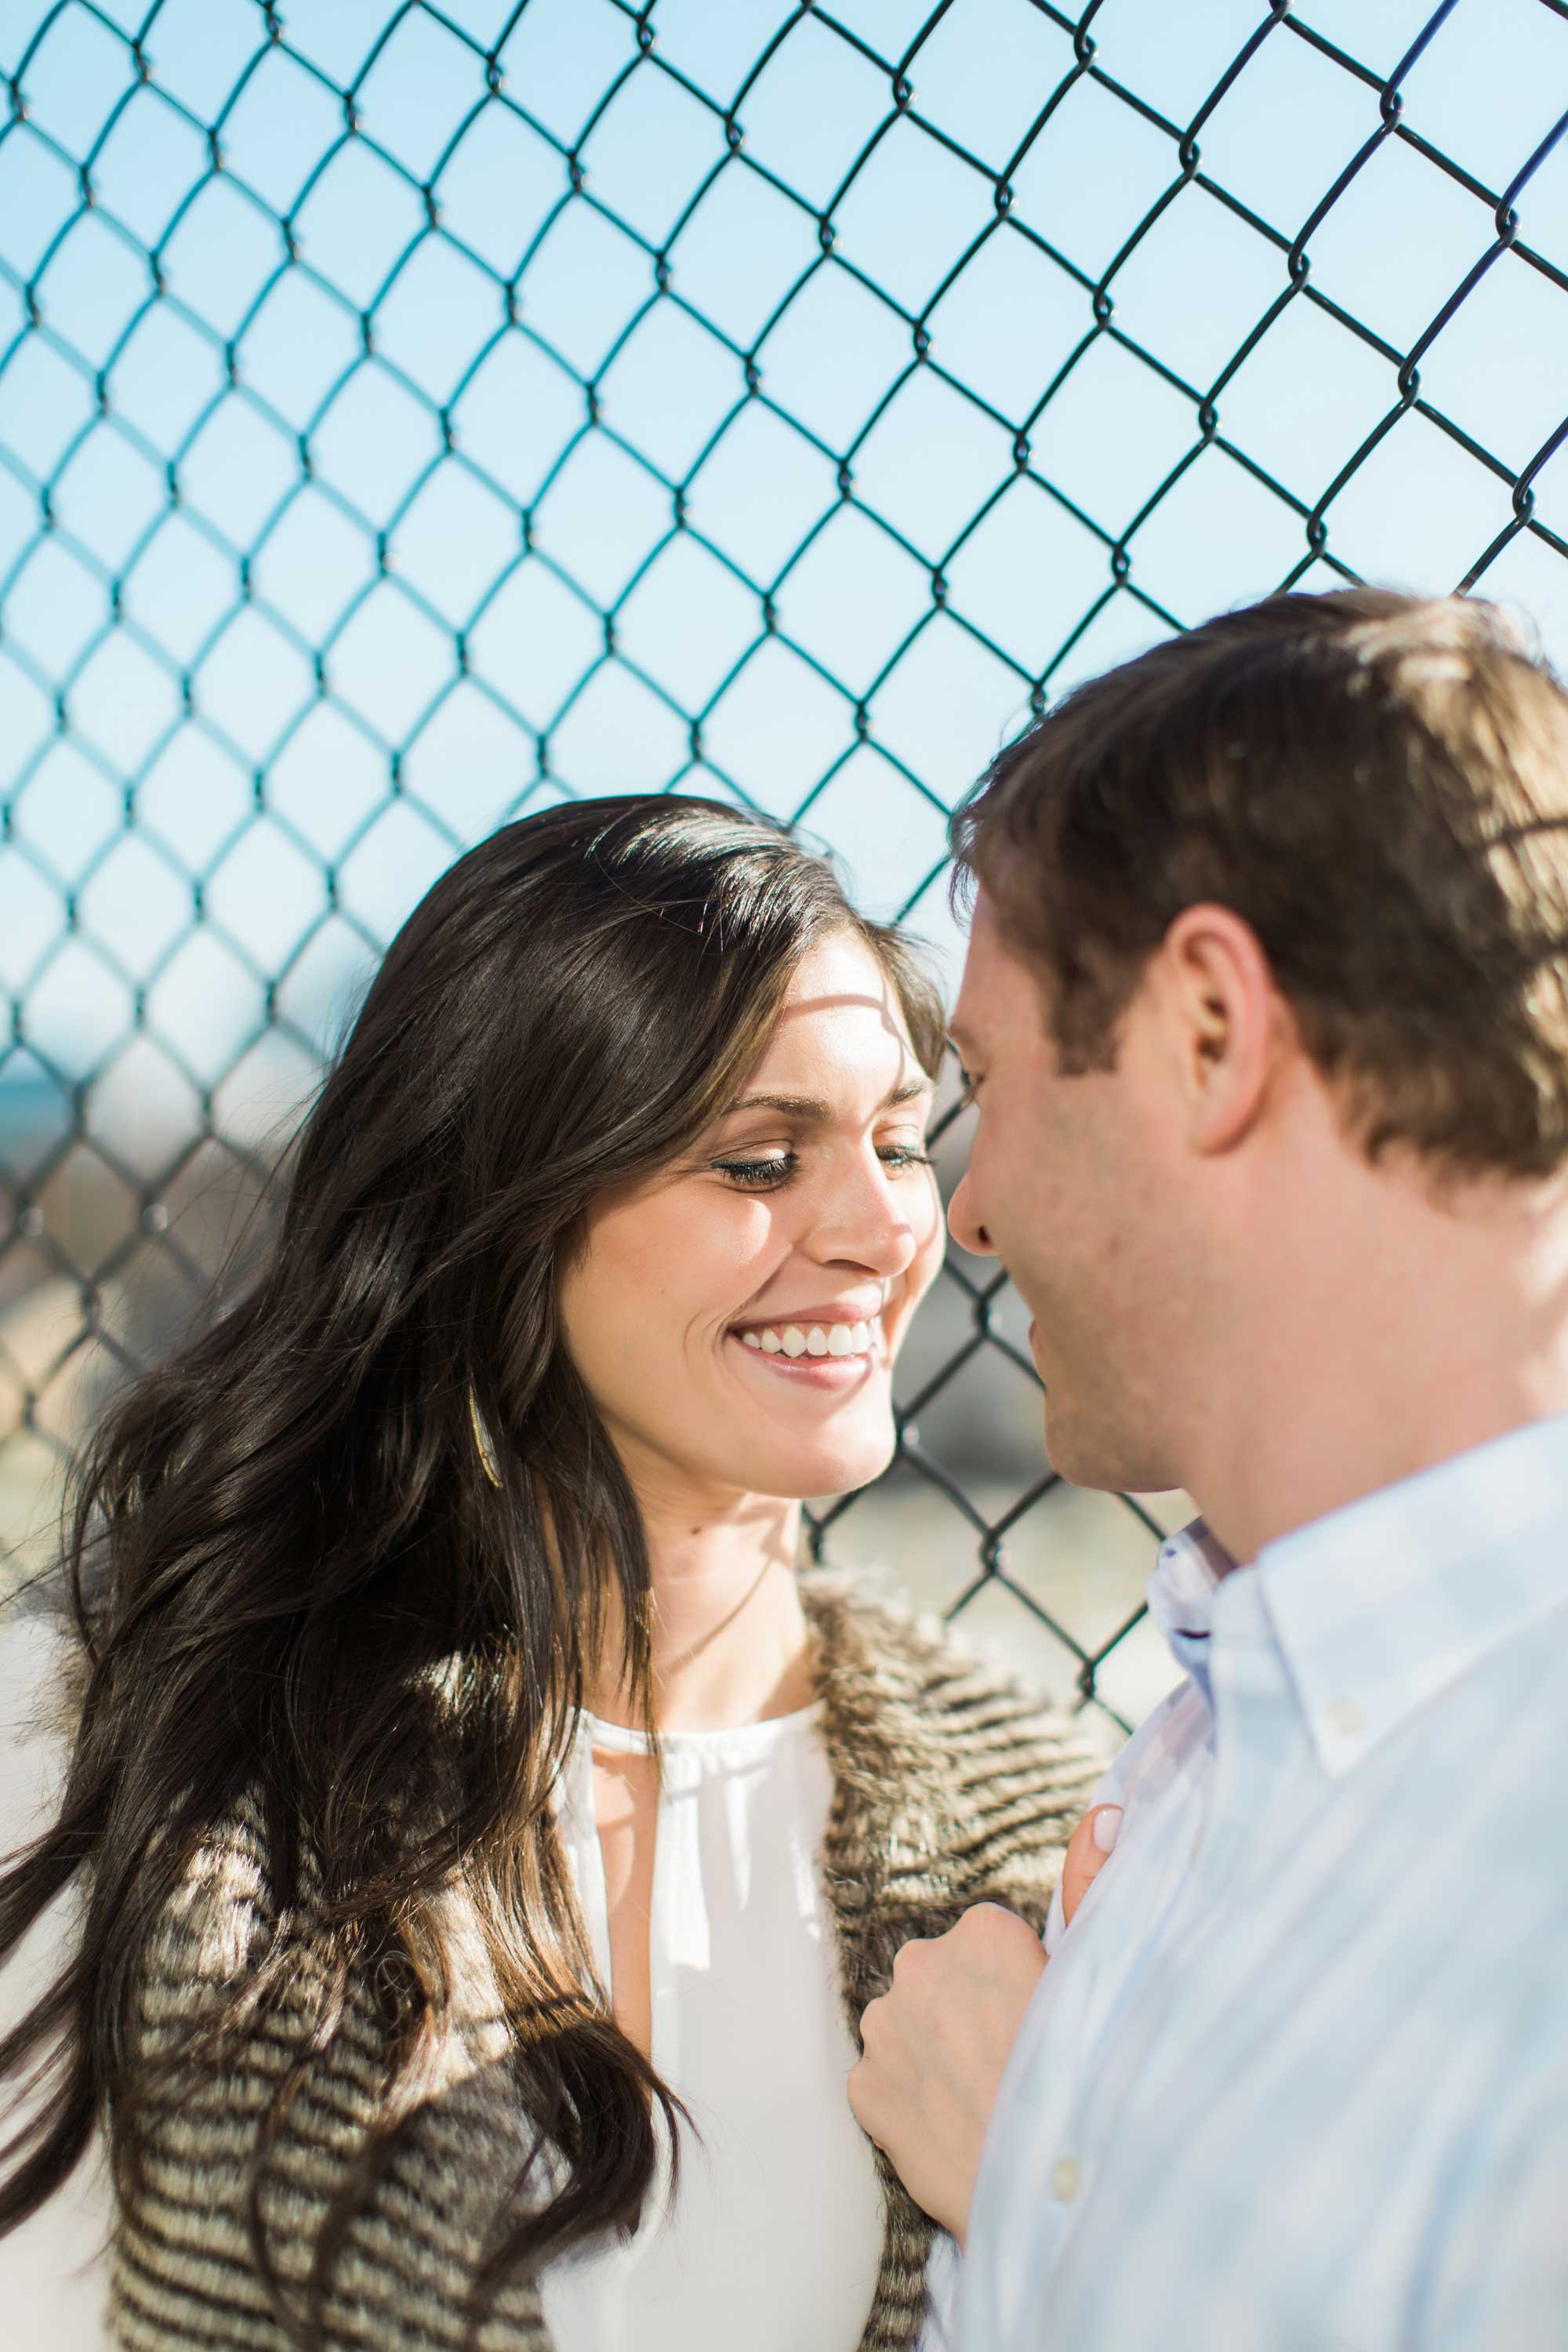 Bride smiles in front of chain link fence at Vue Photography engagement session